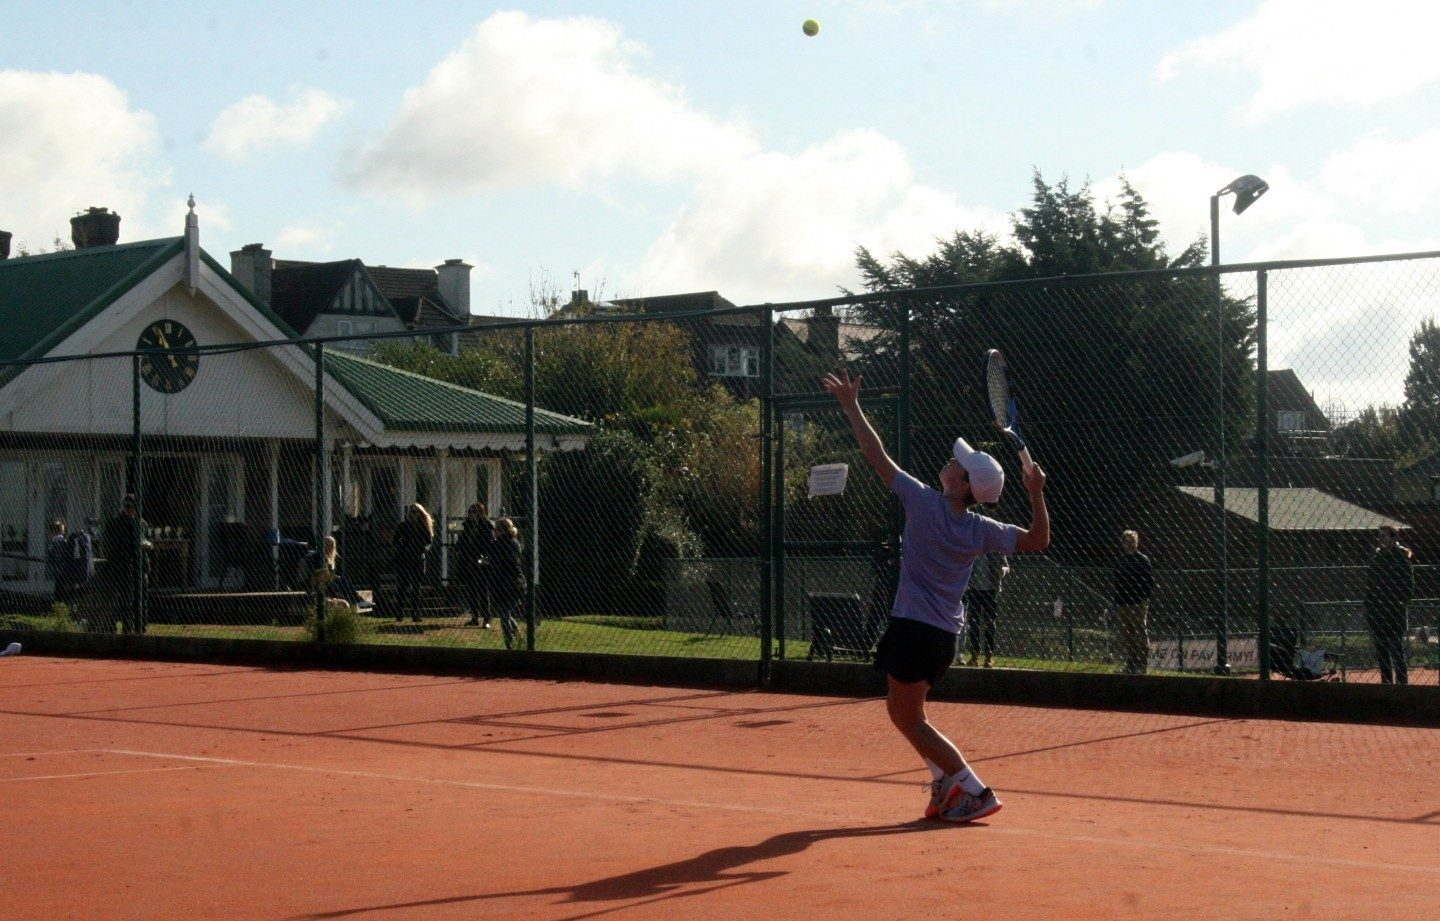 Pav  & Ave Tennis Club, Brighton & Hove